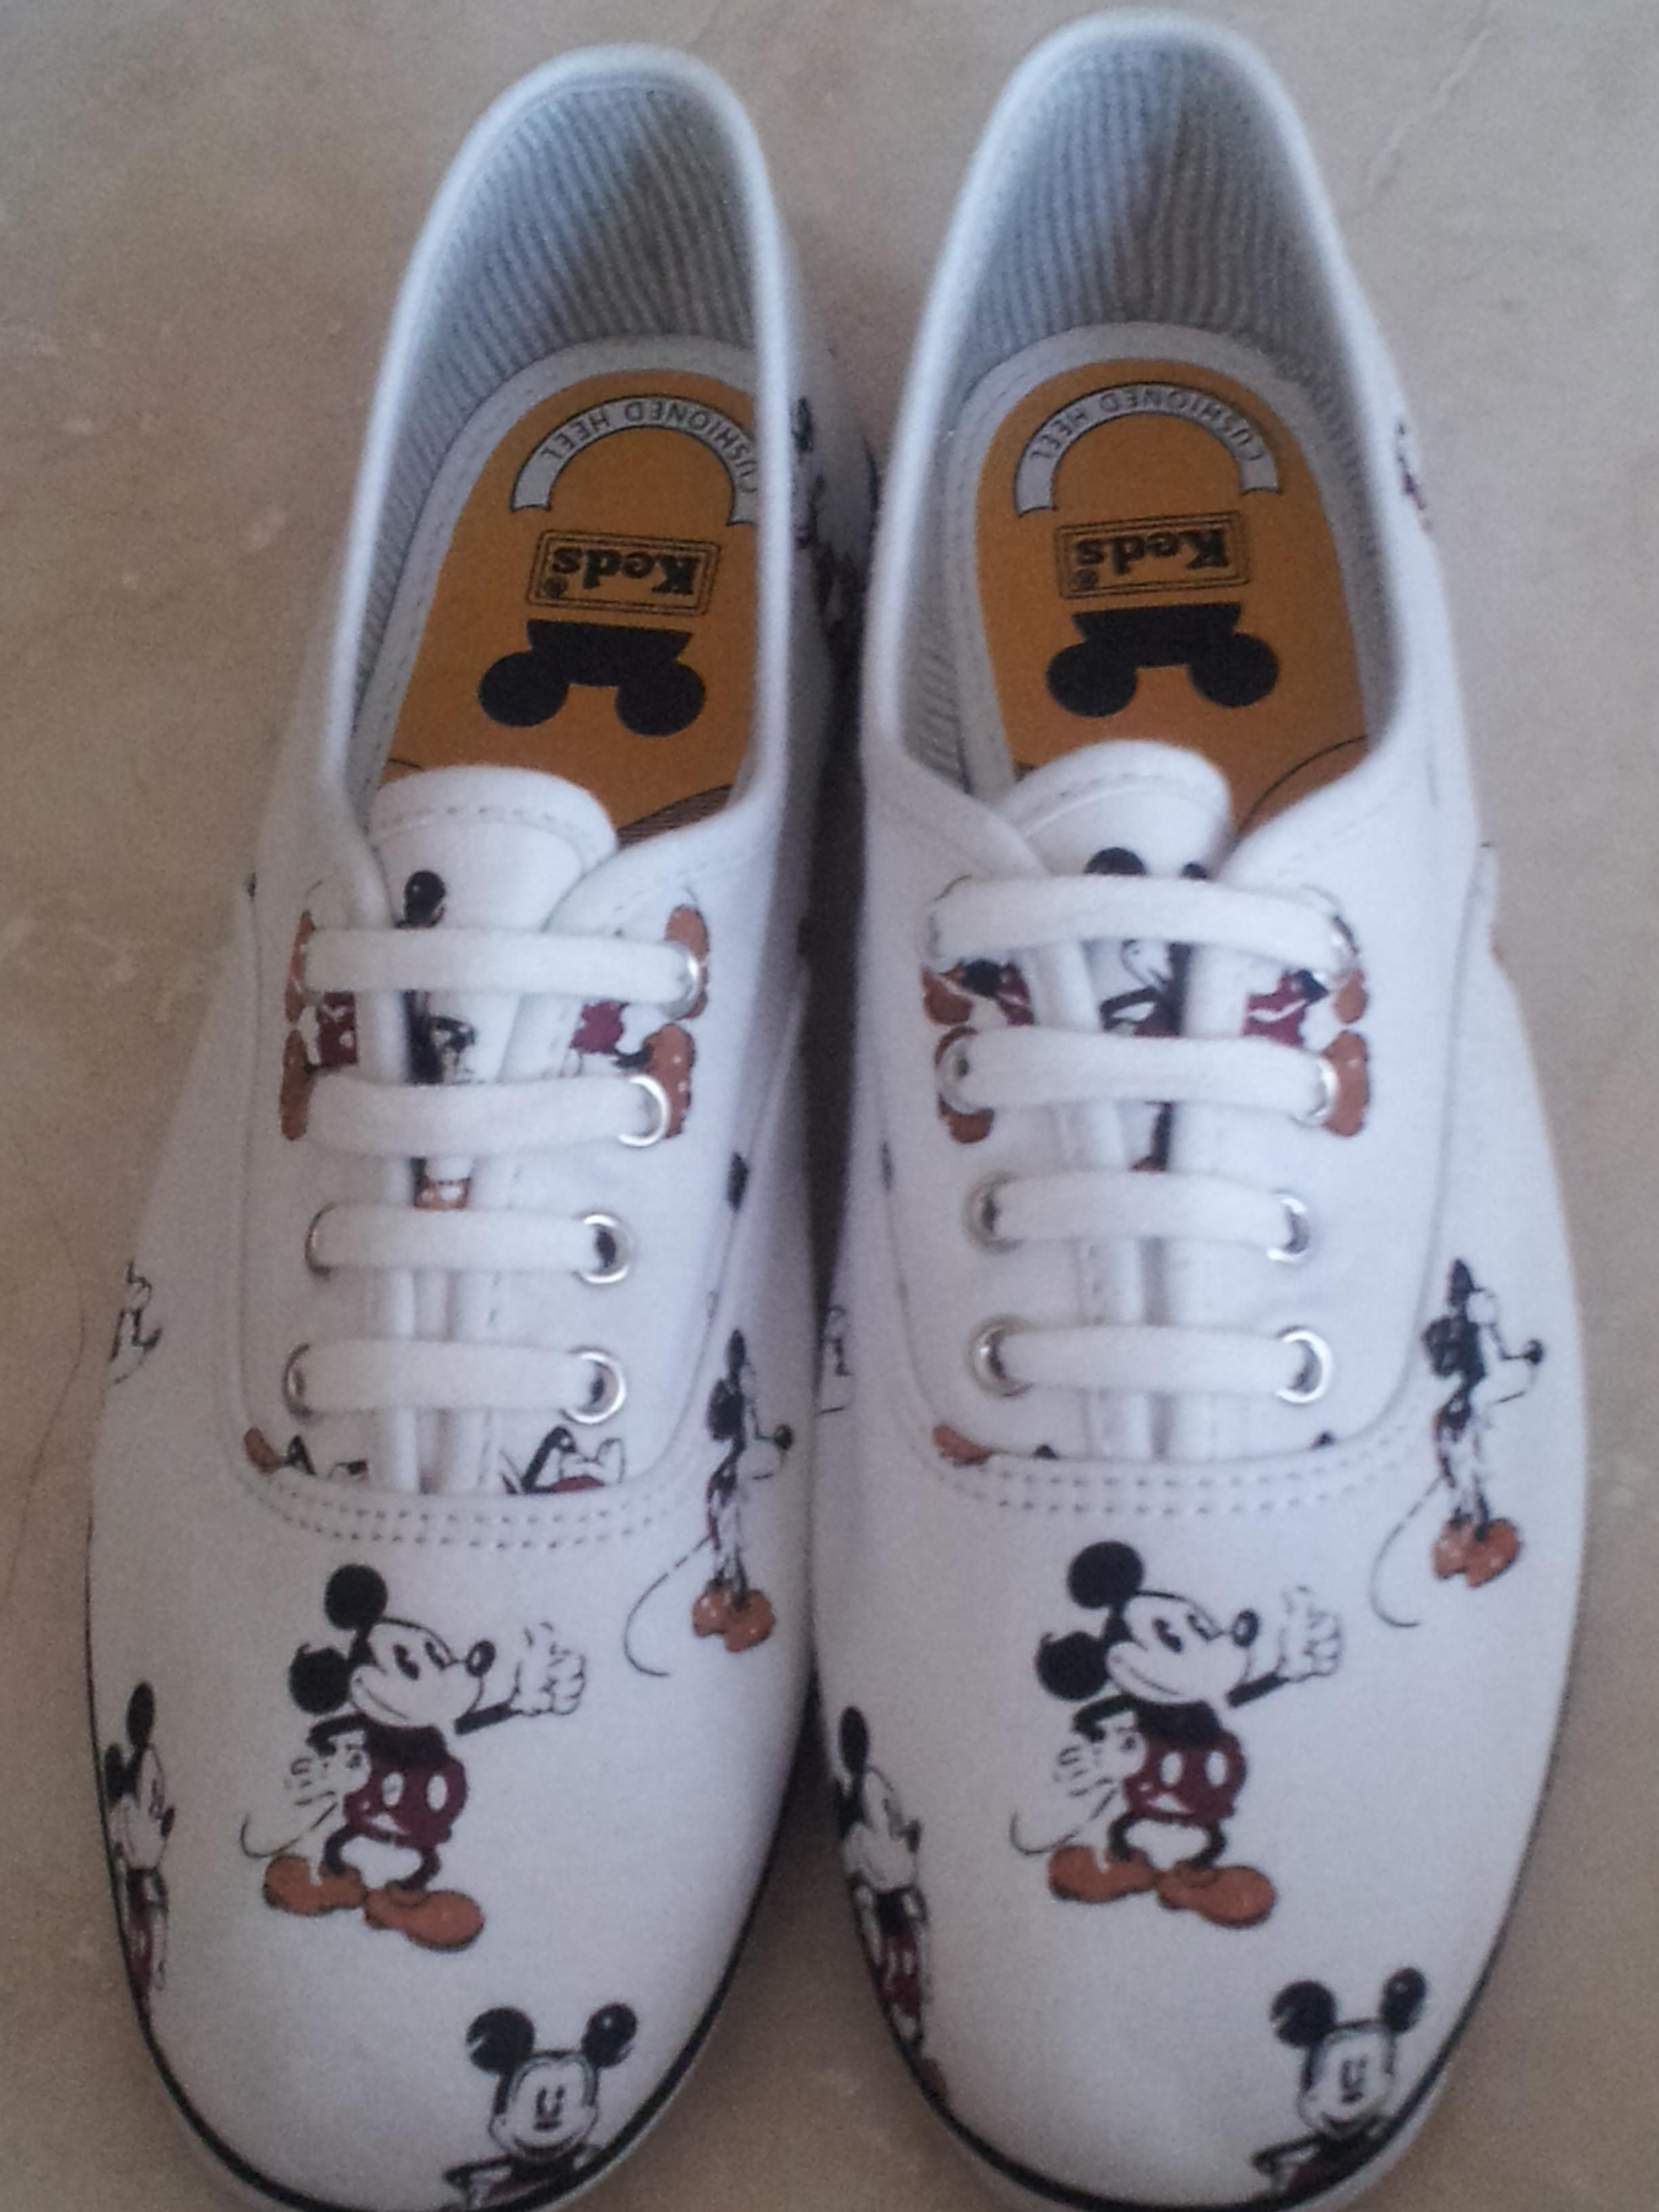 Mickey mouse keds. These would complete